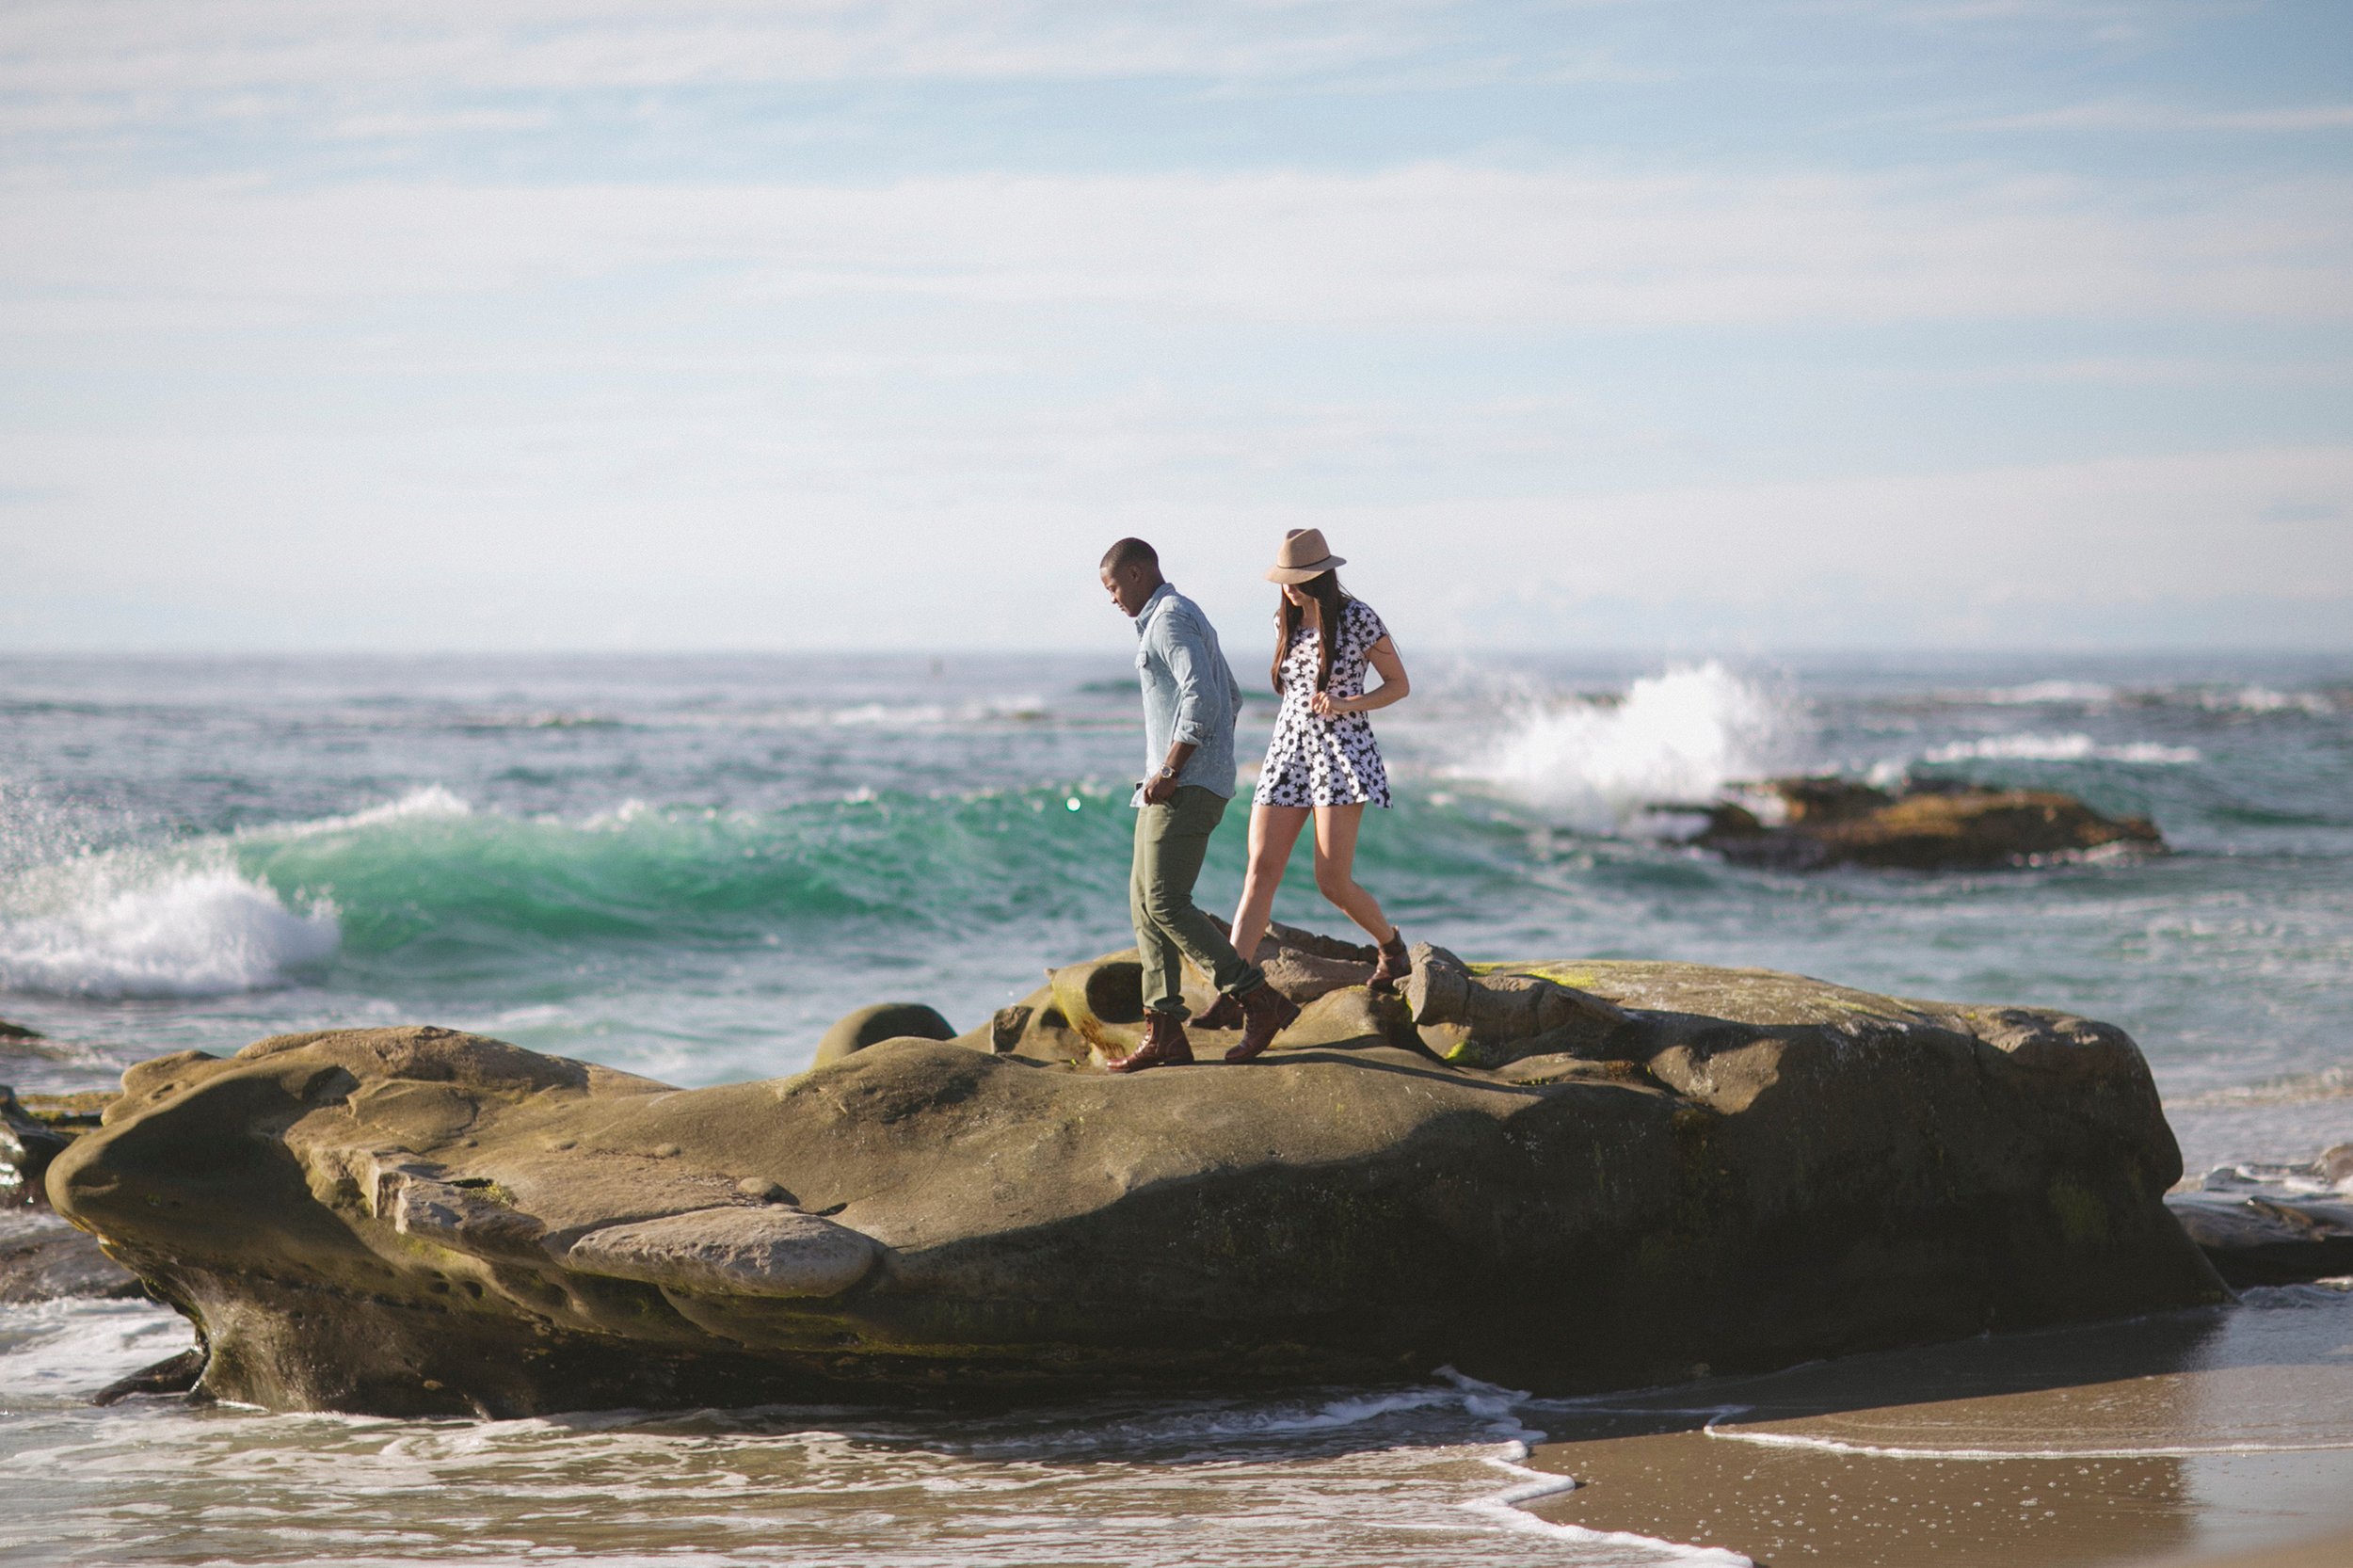 Colby-and-Jess-Adventure-Engagement-Photography-Torrey-Pines-La-Jolla-California55.jpg